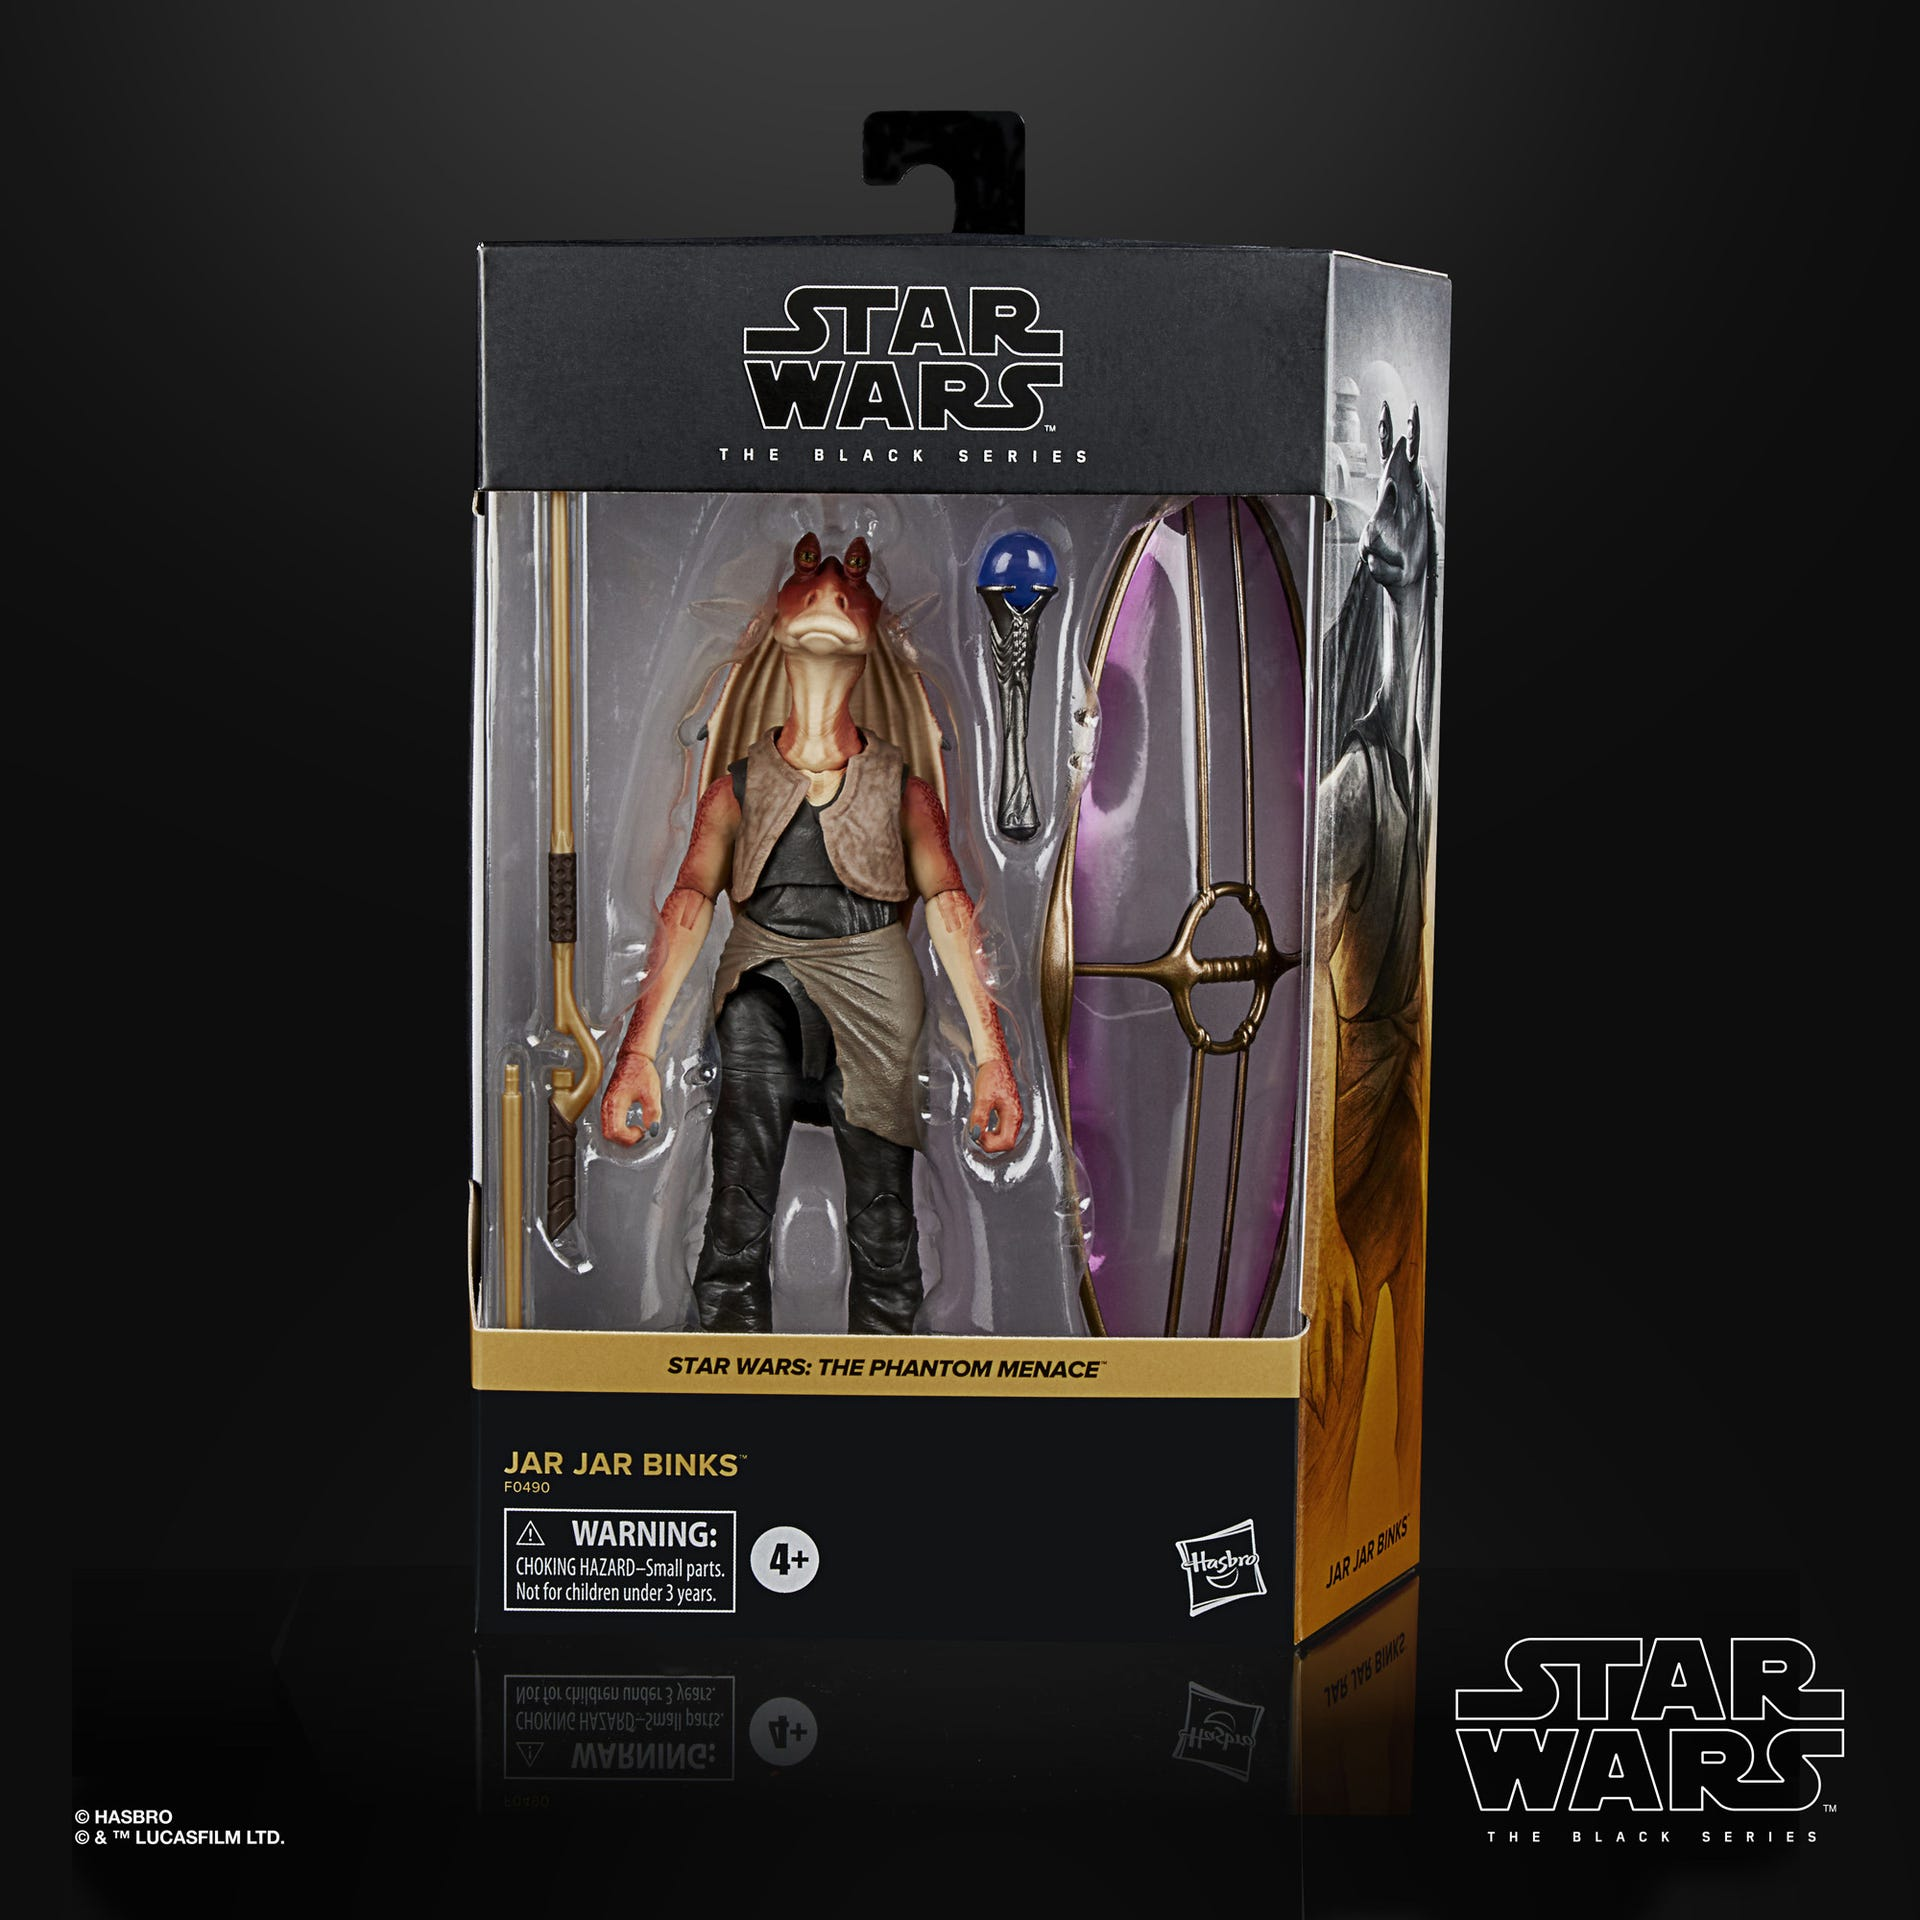 Star Wars The Black Series Jar Jar Binks Deluxe Figur 15 cm F0490 5010993782680